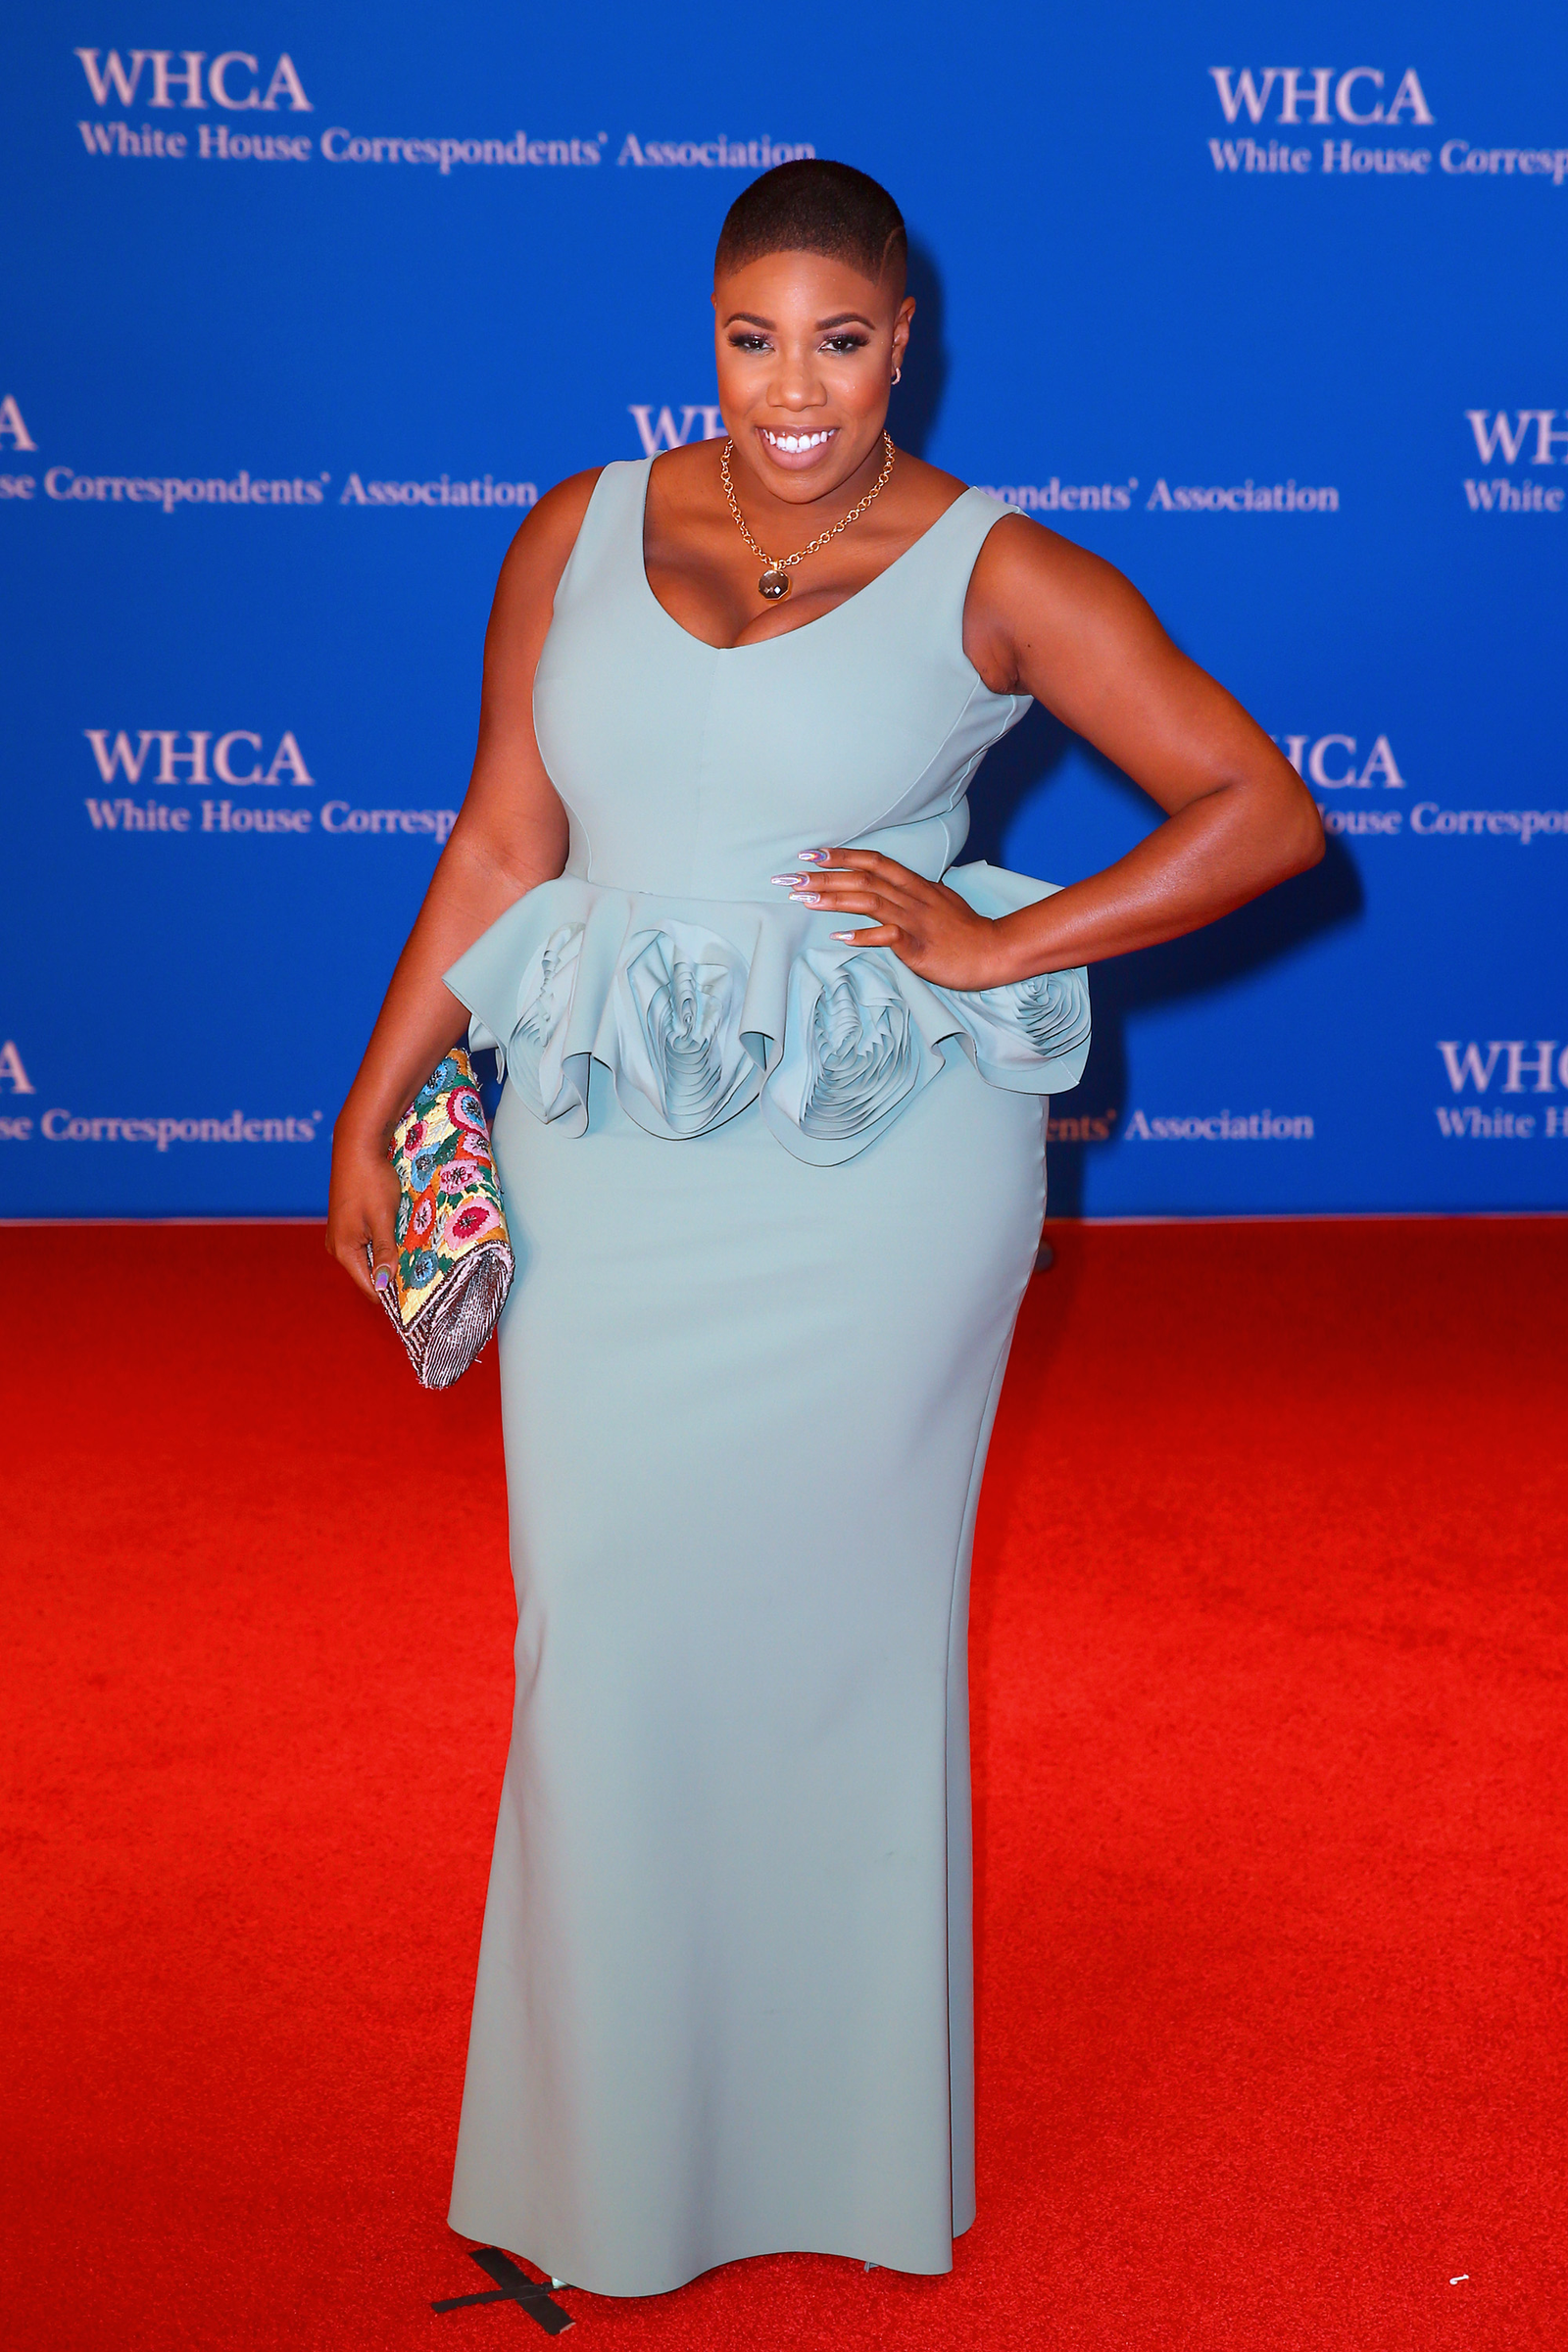 Sweet in seafoam: Former Sen. Bernie Sanders press secretary Symone Sanders attends the 2018 White House Correspondents' Dinner at the Washington Hilton on April 28, 2018, in Washington, D.C.